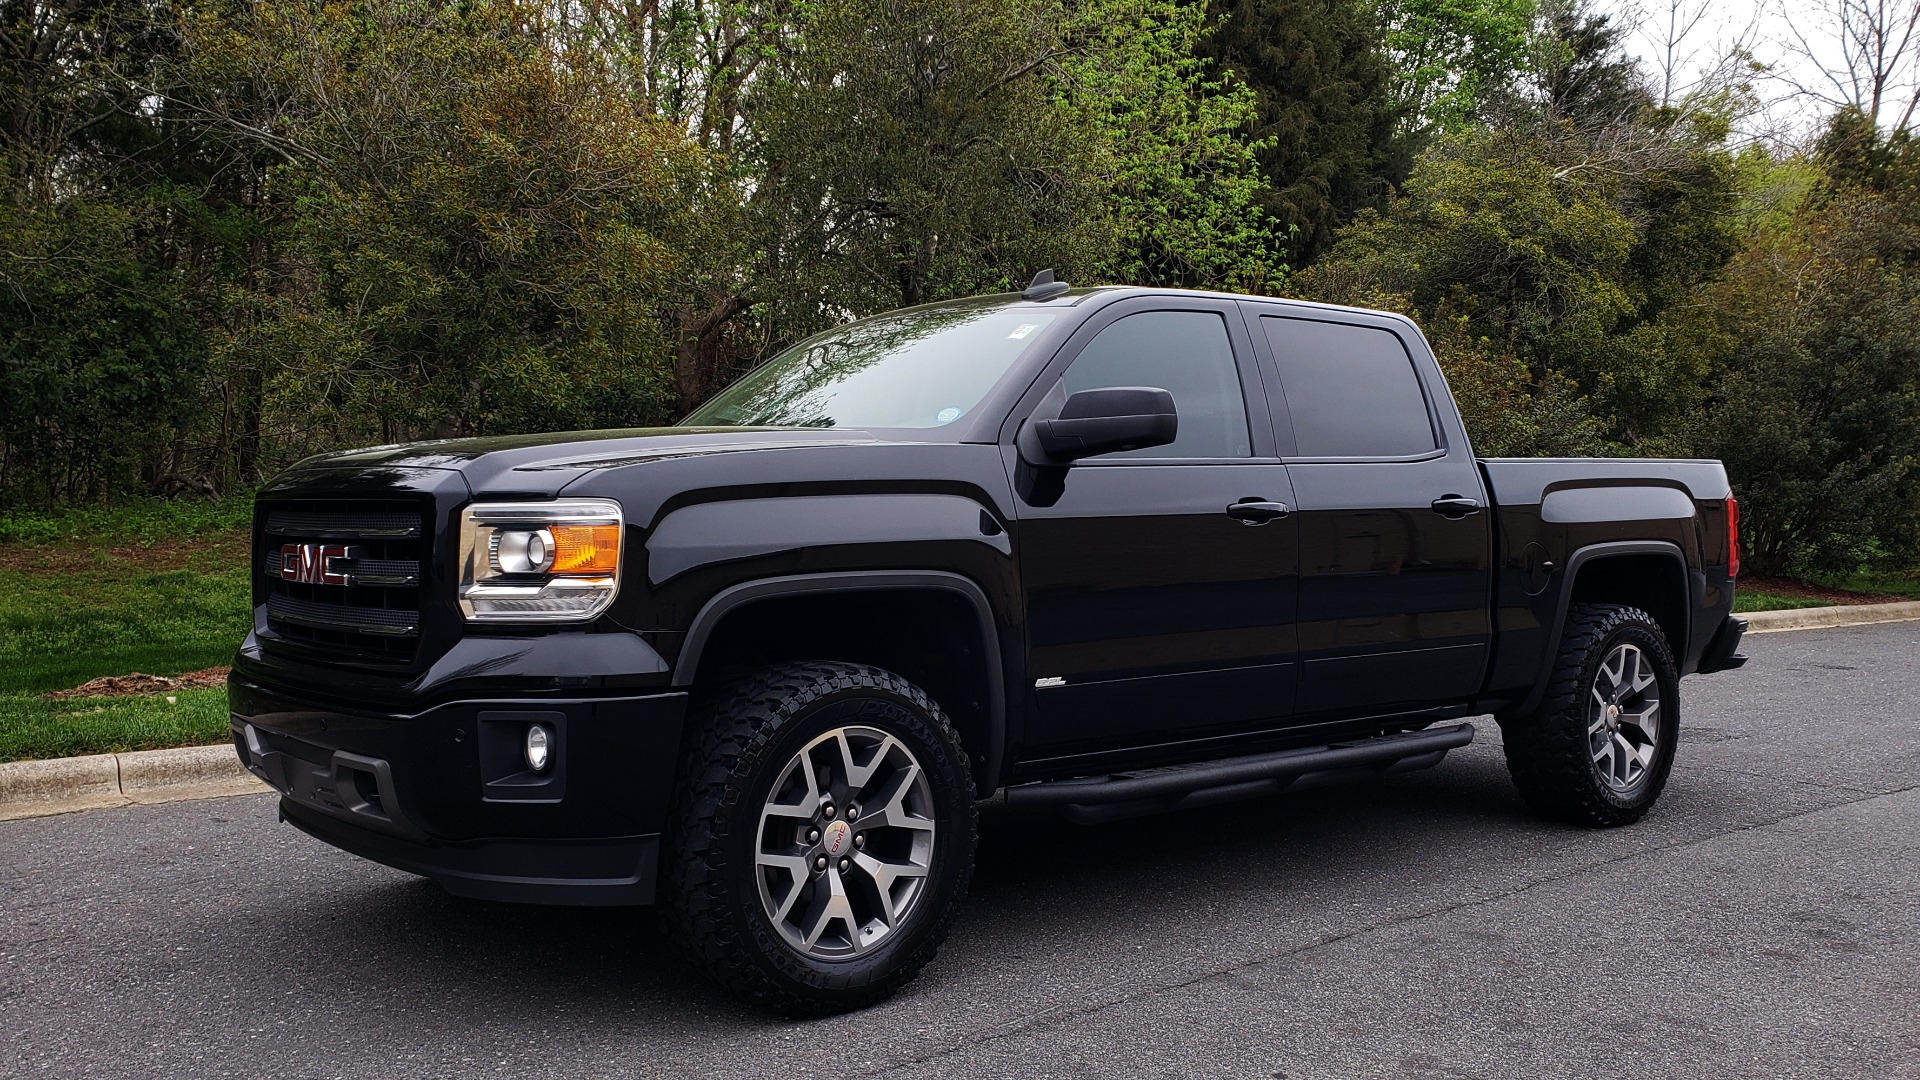 Used 2015 GMC SIERRA 1500 SLT 4WD CREW CAB / 6.2L V8 / NAV / BOSE / REARVIEW for sale Sold at Formula Imports in Charlotte NC 28227 1